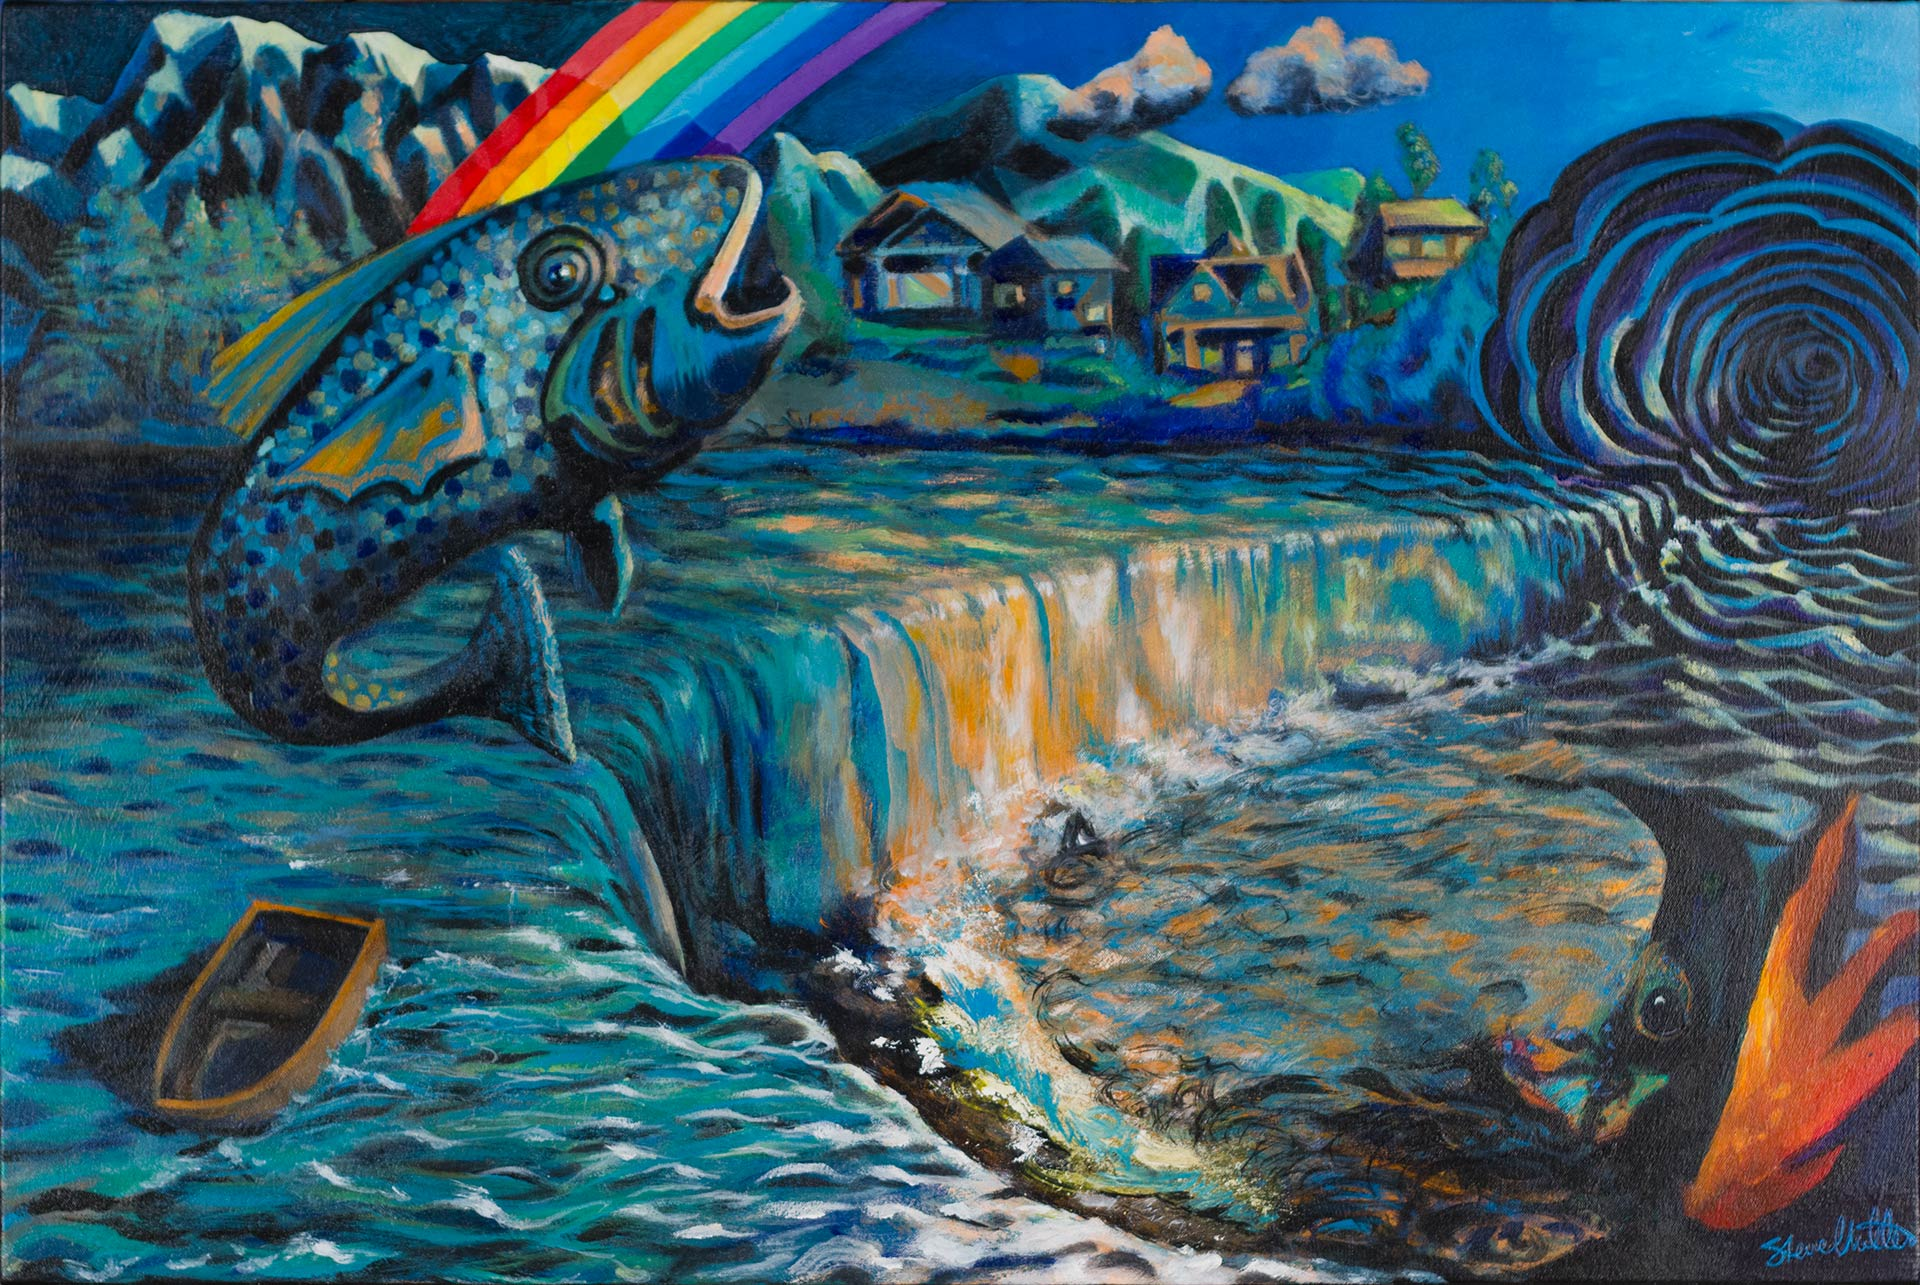 An acrylic landscape painting by Steve Miller of an imaginary rainbow, fish, mountains, house, rowboat, waterfall, and time and space portal. Acrylic on canvas. © Steve Miller 2016